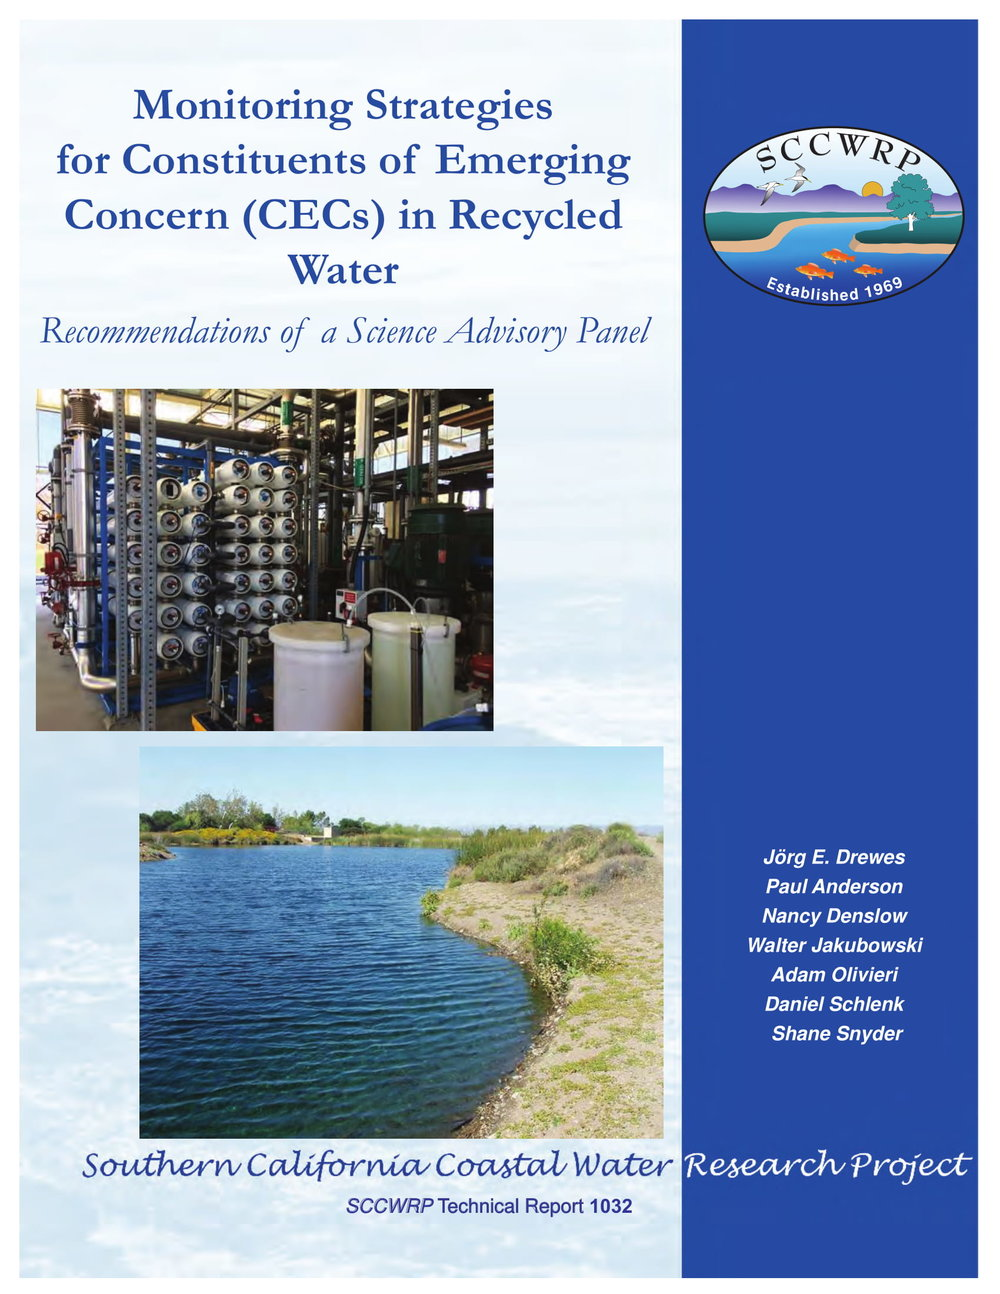 final_report_monitoring_strategies_for_cecs_in_recycled_water_april2018-1.jpg